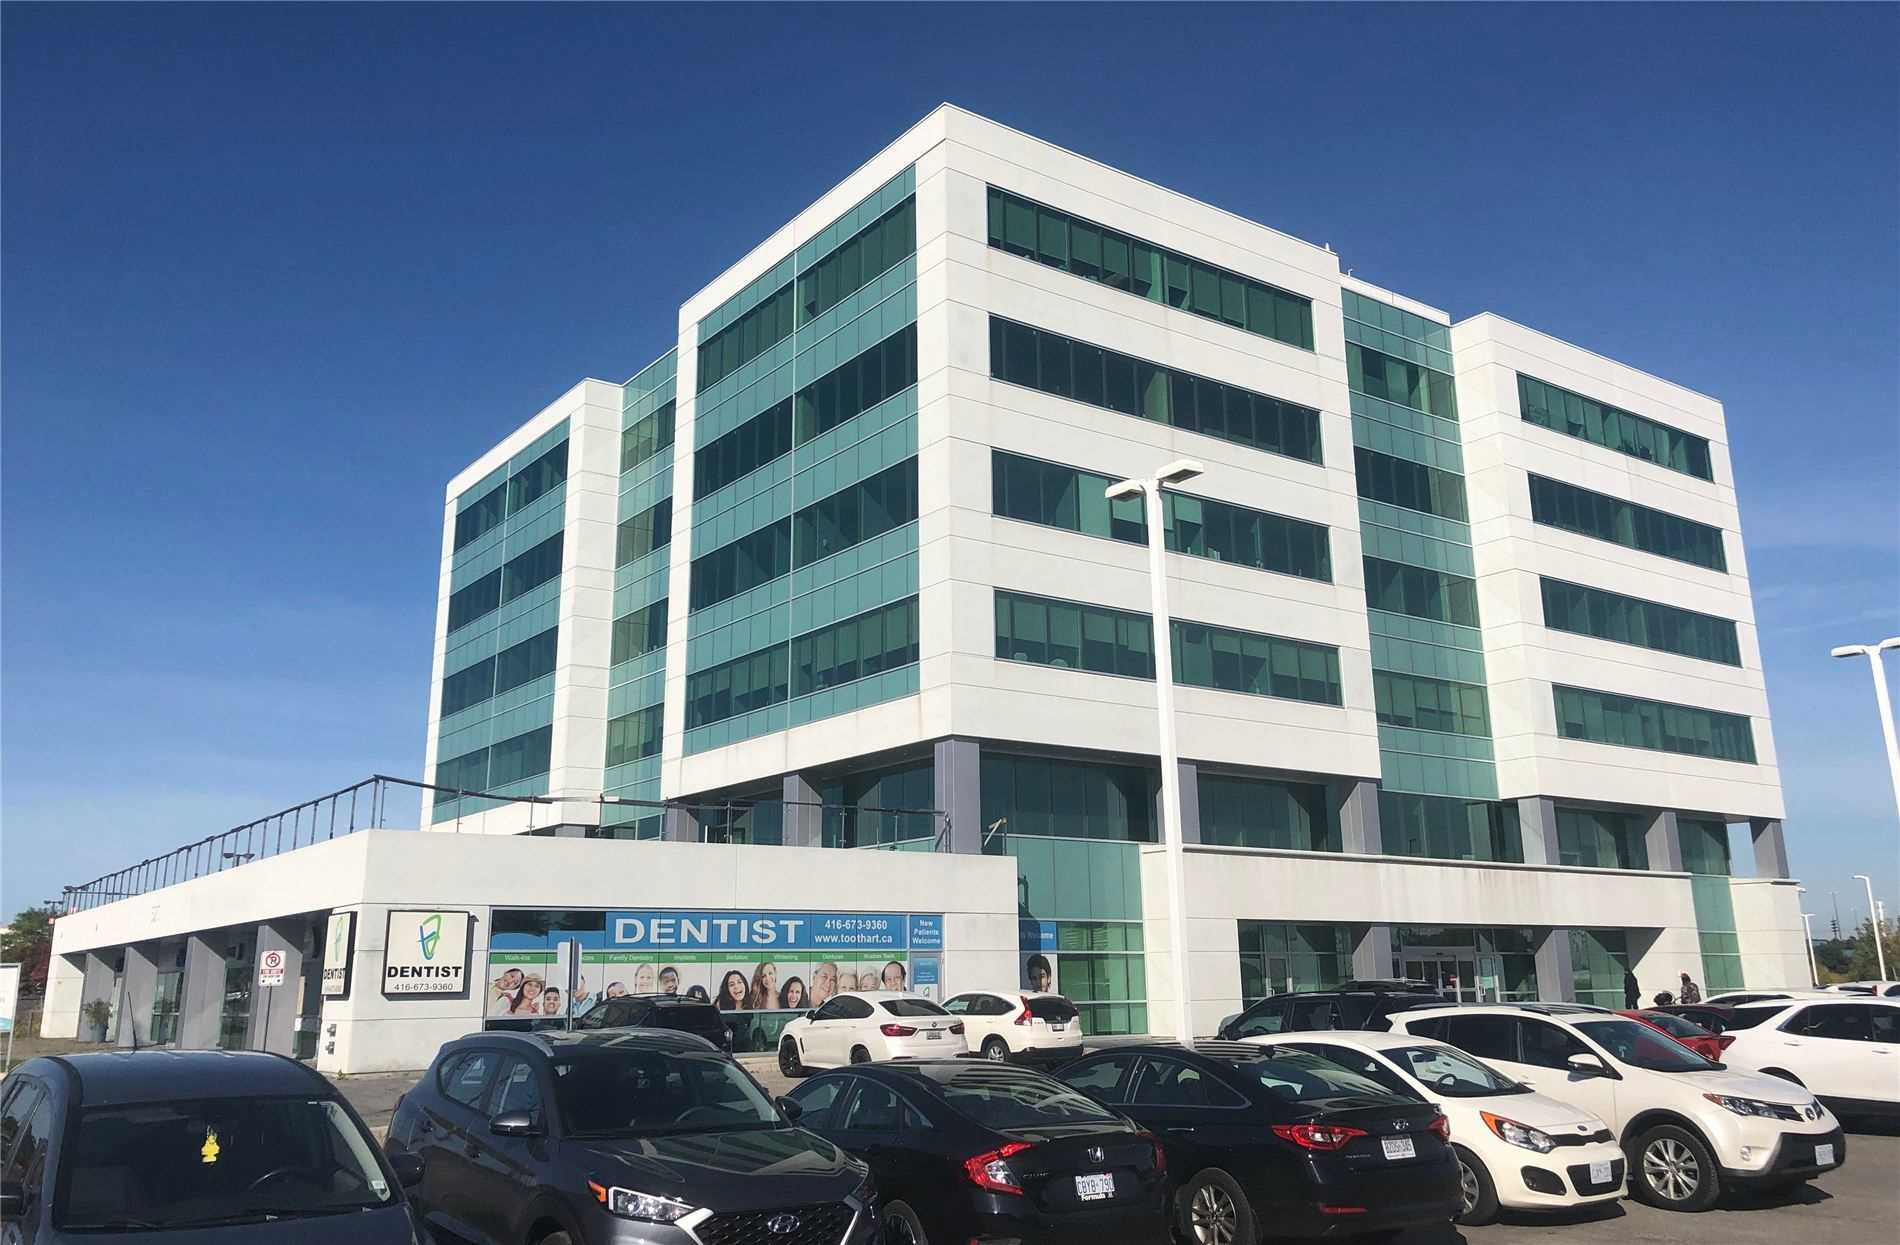 520 Ellesmere Rd 401, Wexford-Maryvale, Toronto, Ontario M1R4E6, ,Office,For Lease,Ellesmere,E4646310